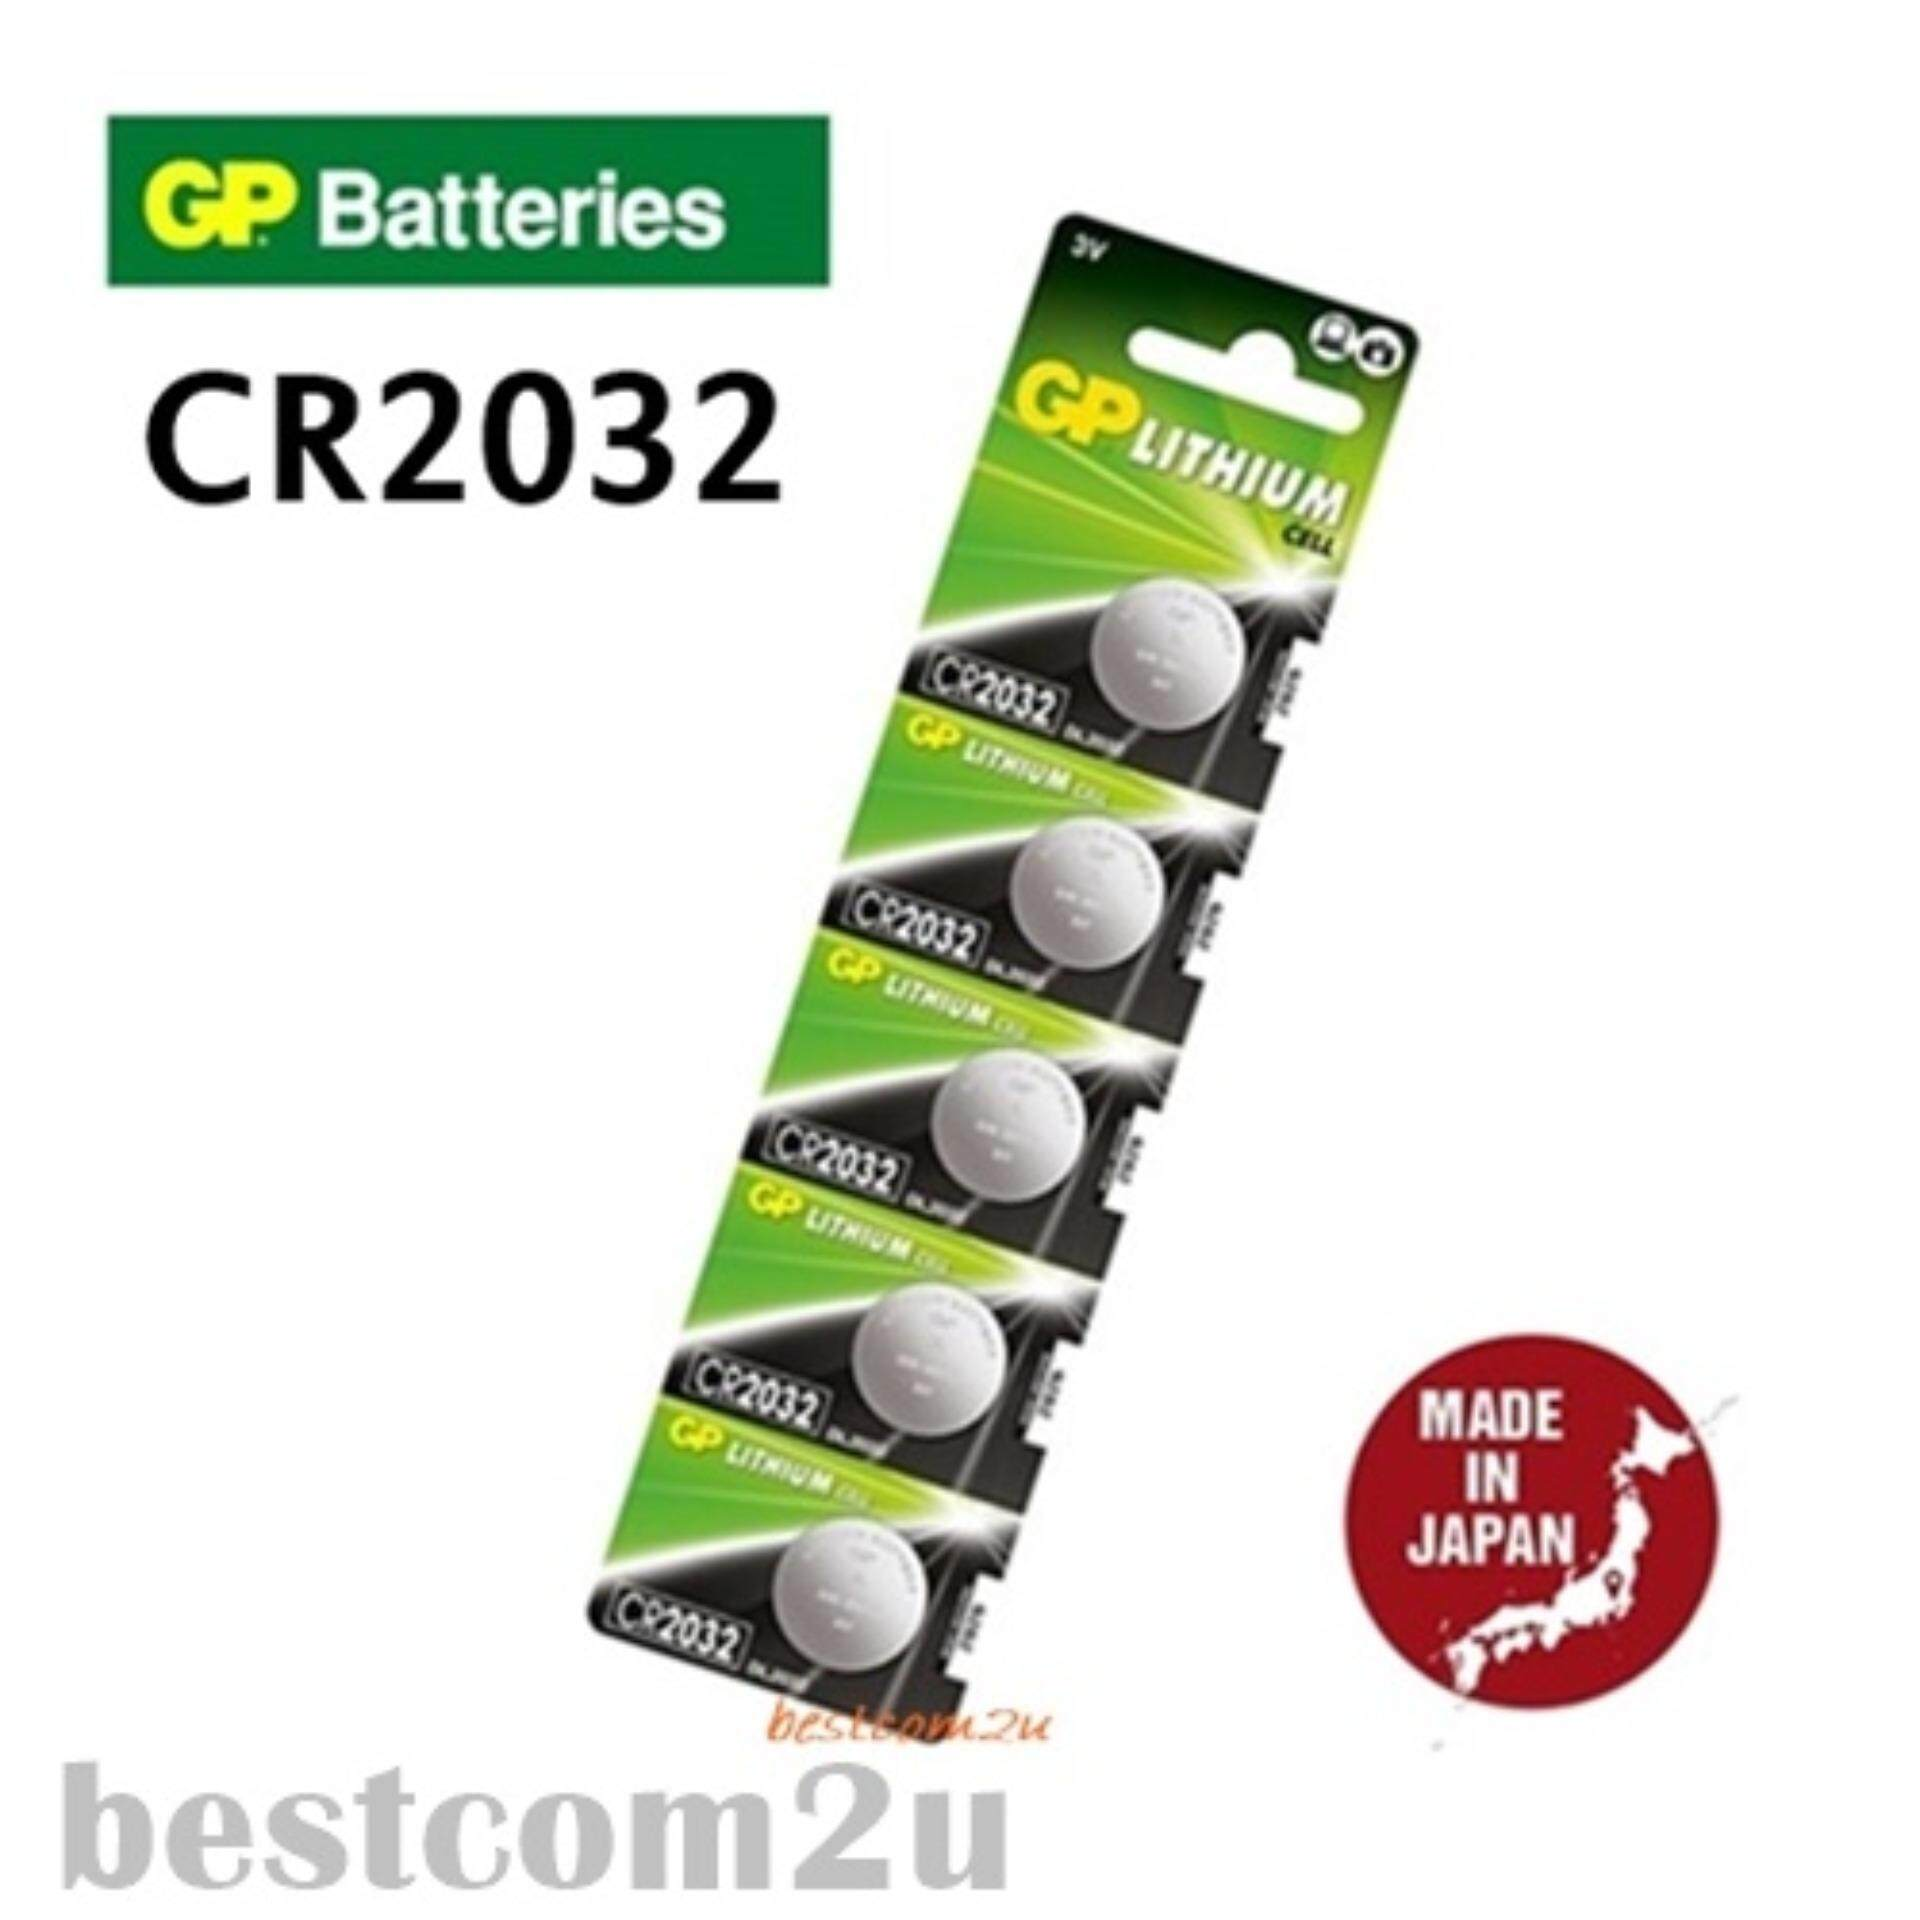 GP Batteries CR2032 Lithium Cell Electronic Device (5PCS) Malaysia